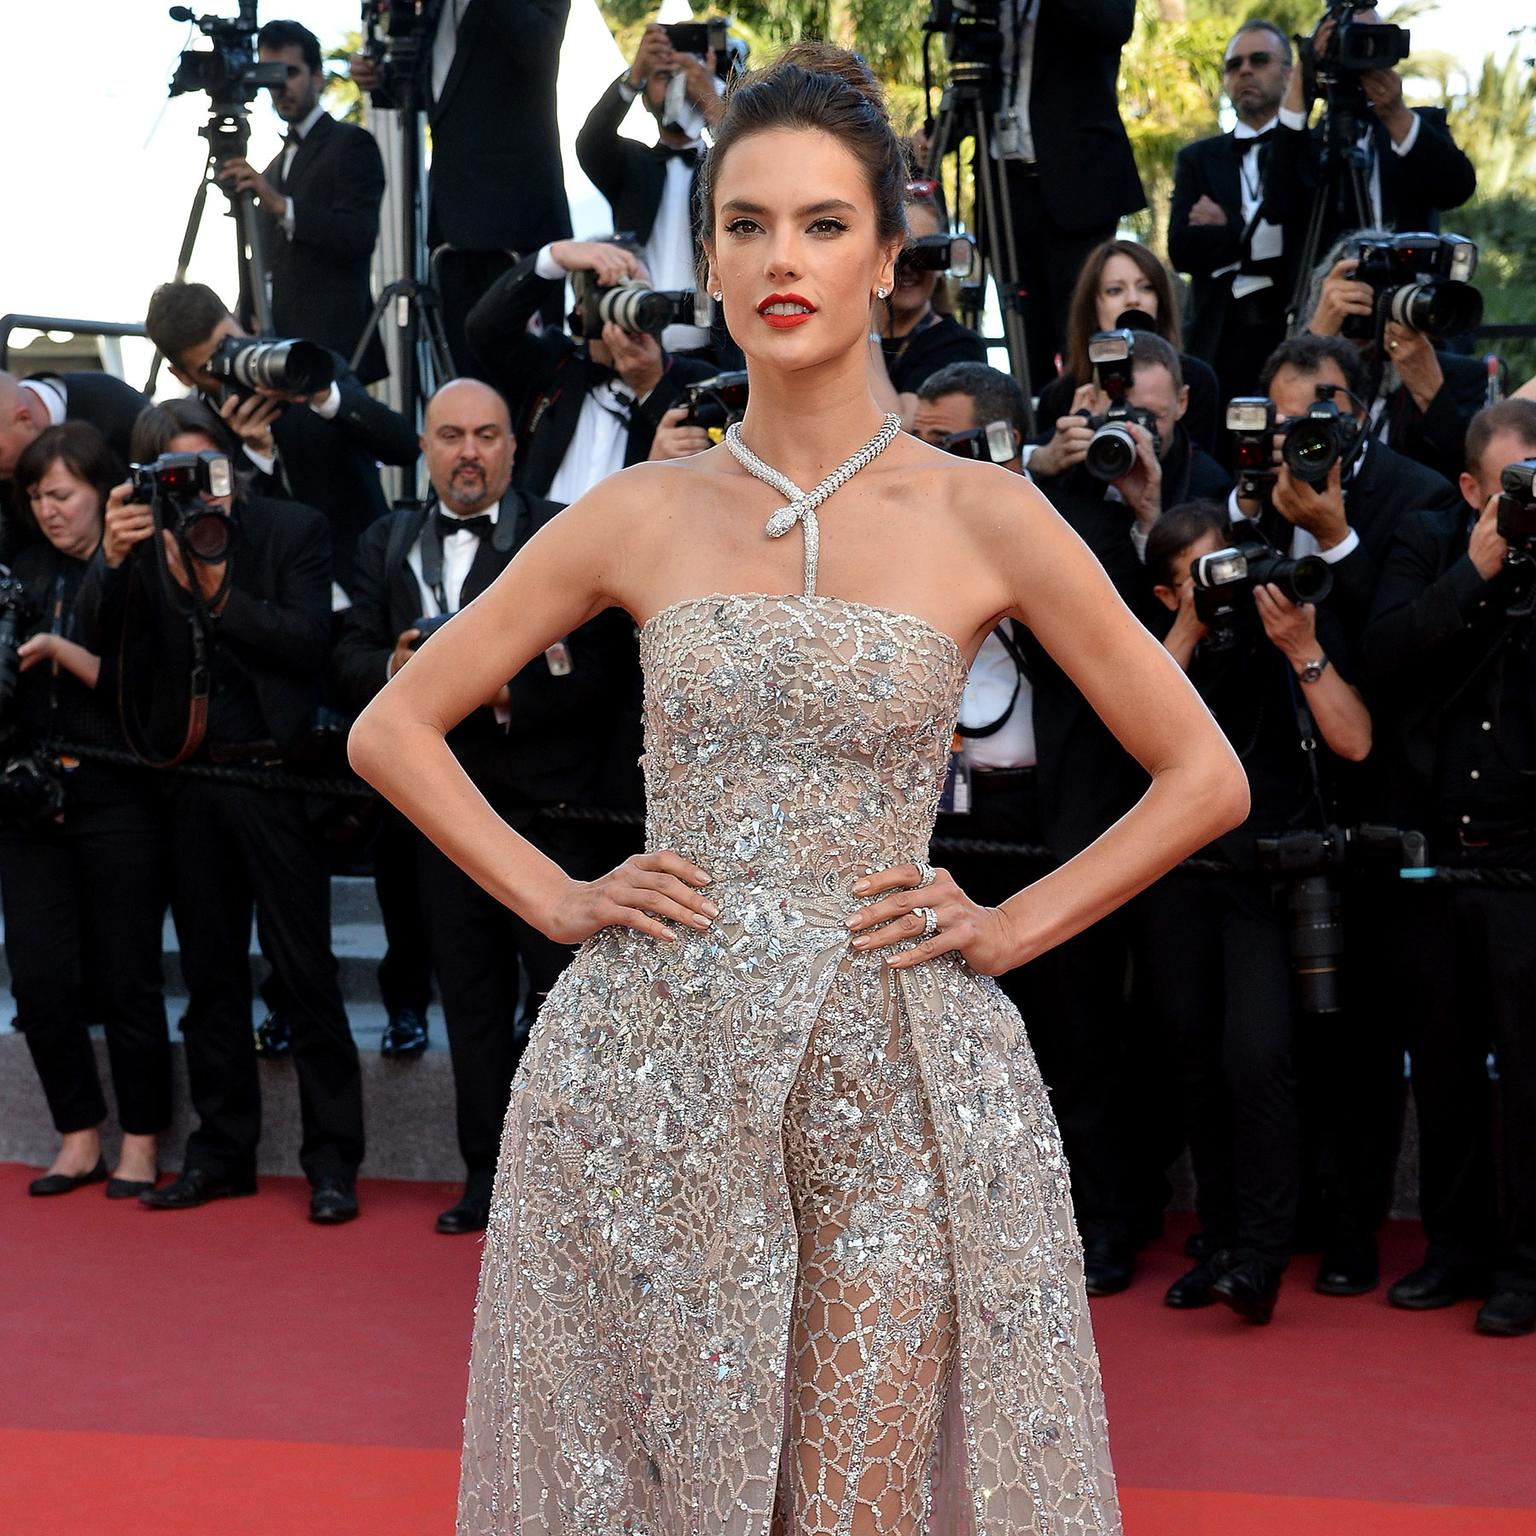 Cannes 2016 Day 10: Alessandra Ambrosio in Bulgari and Zuhair Murad